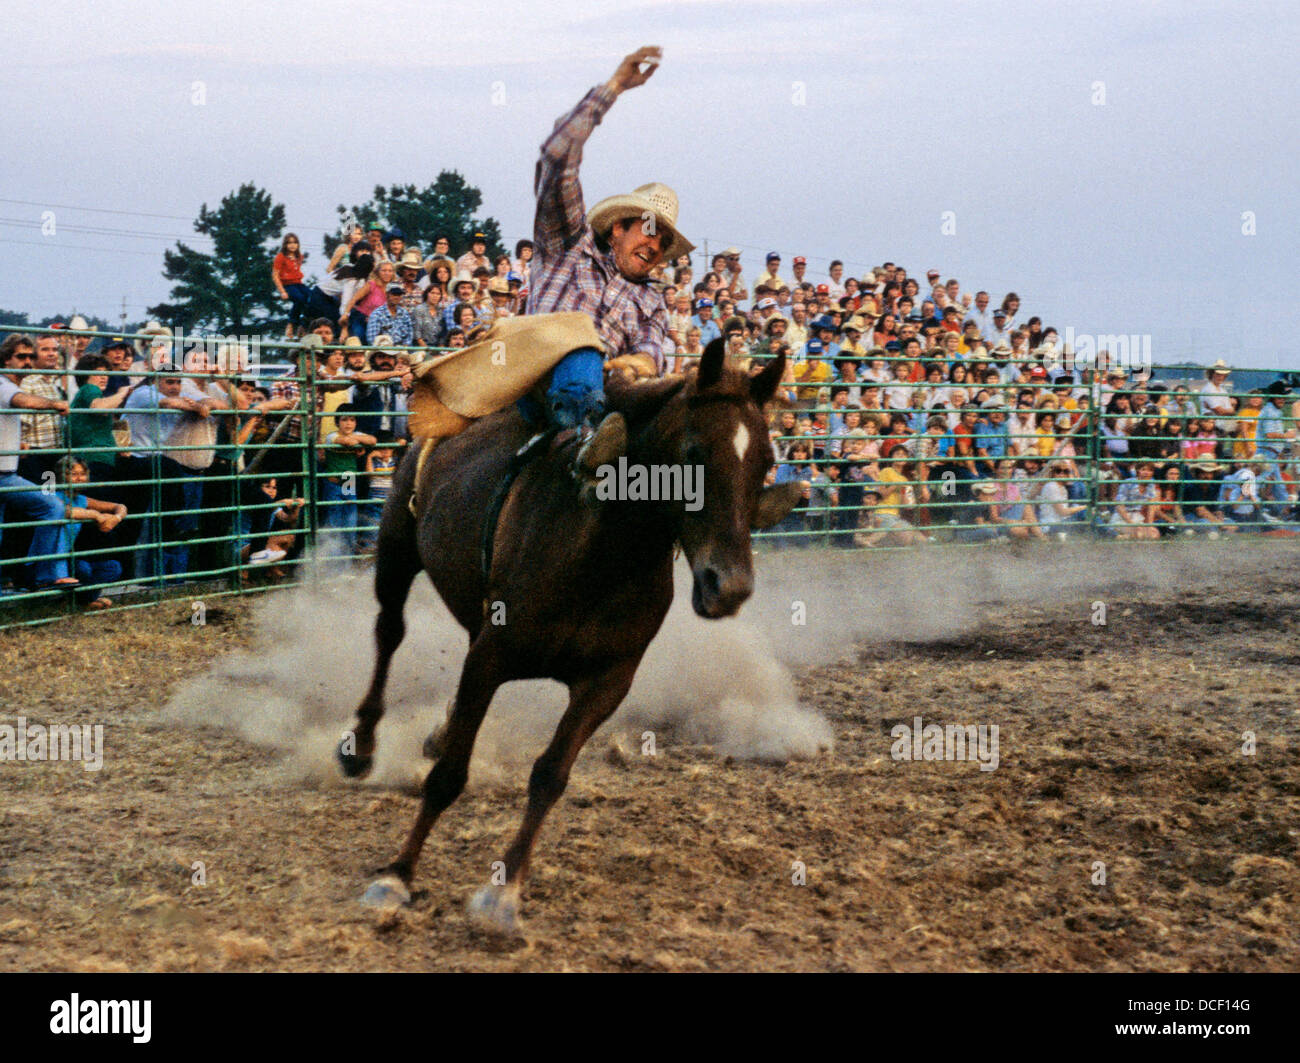 A Rodeo Rider On A Bucking Bronco Horse In Front Of A